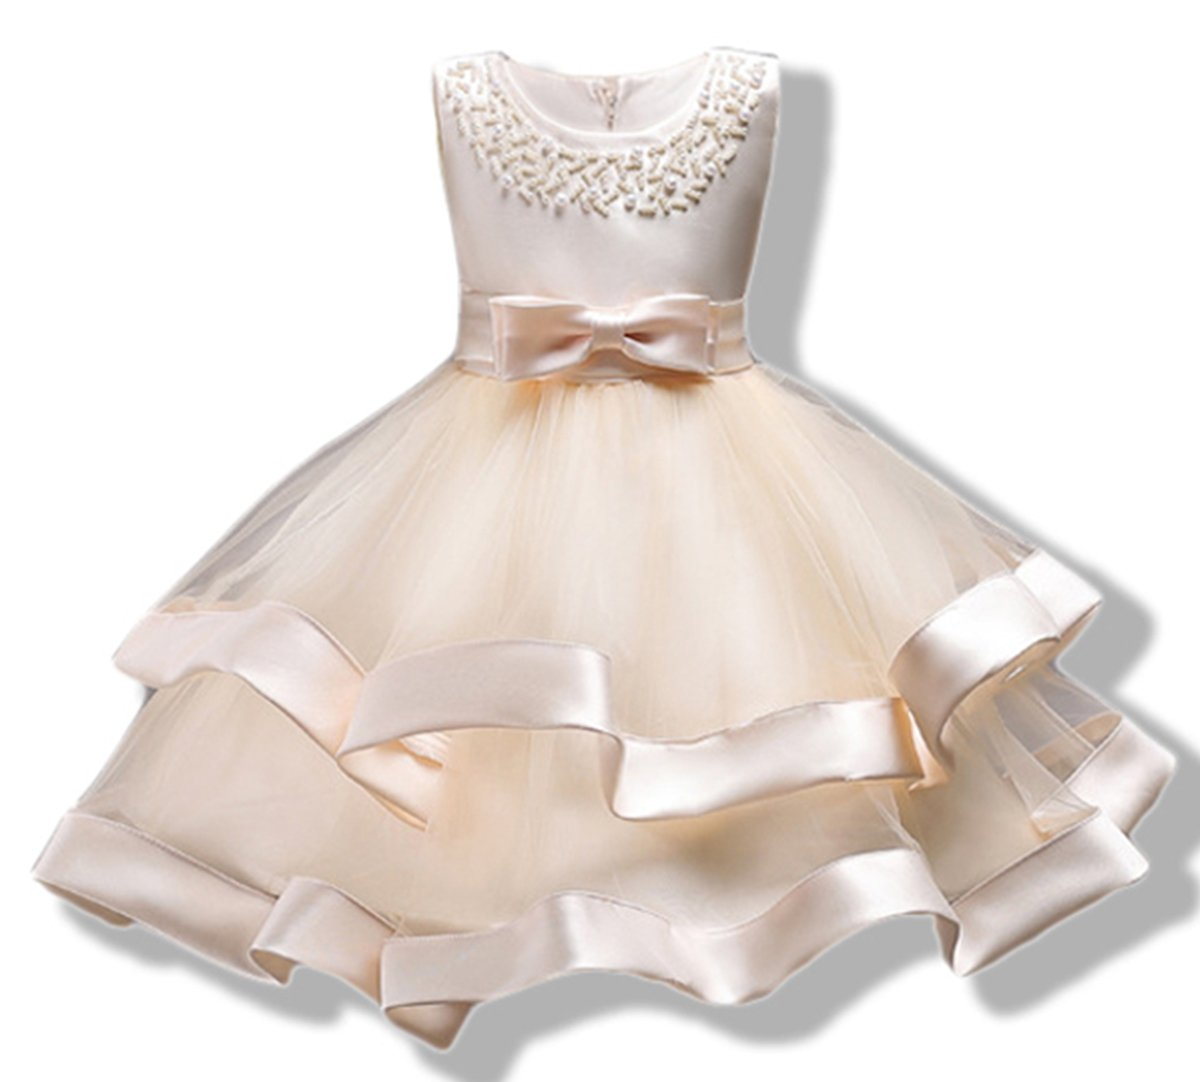 AYOMIS Girls Lace Bridesmaid Dress Wedding Pageant Dresses Tulle Party Gown Age 3-9Y(Champagne,4-5Y)